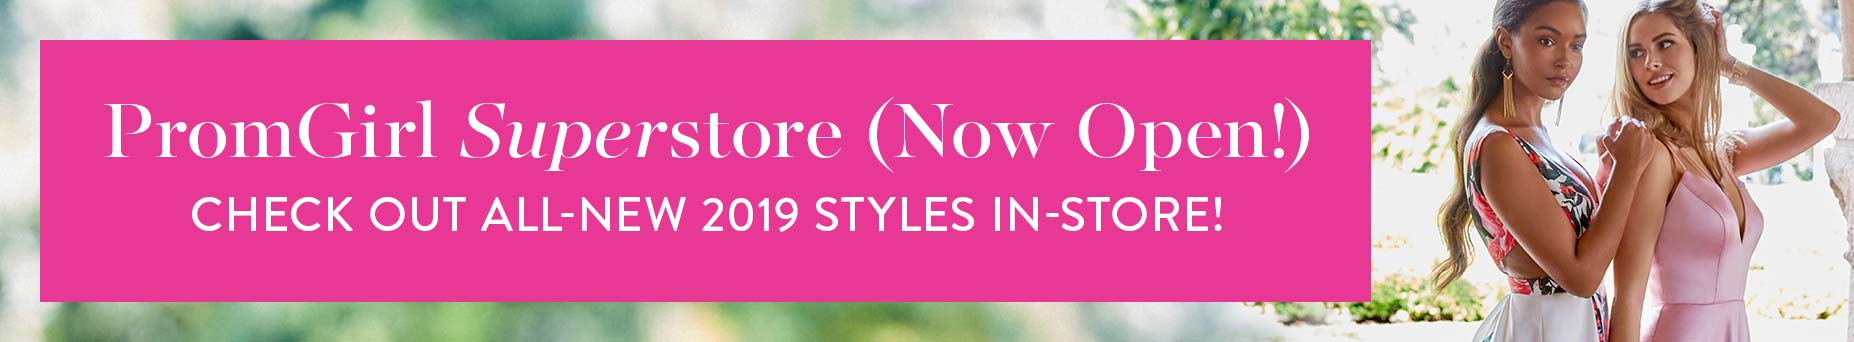 Prom Girl SuperStore now Open